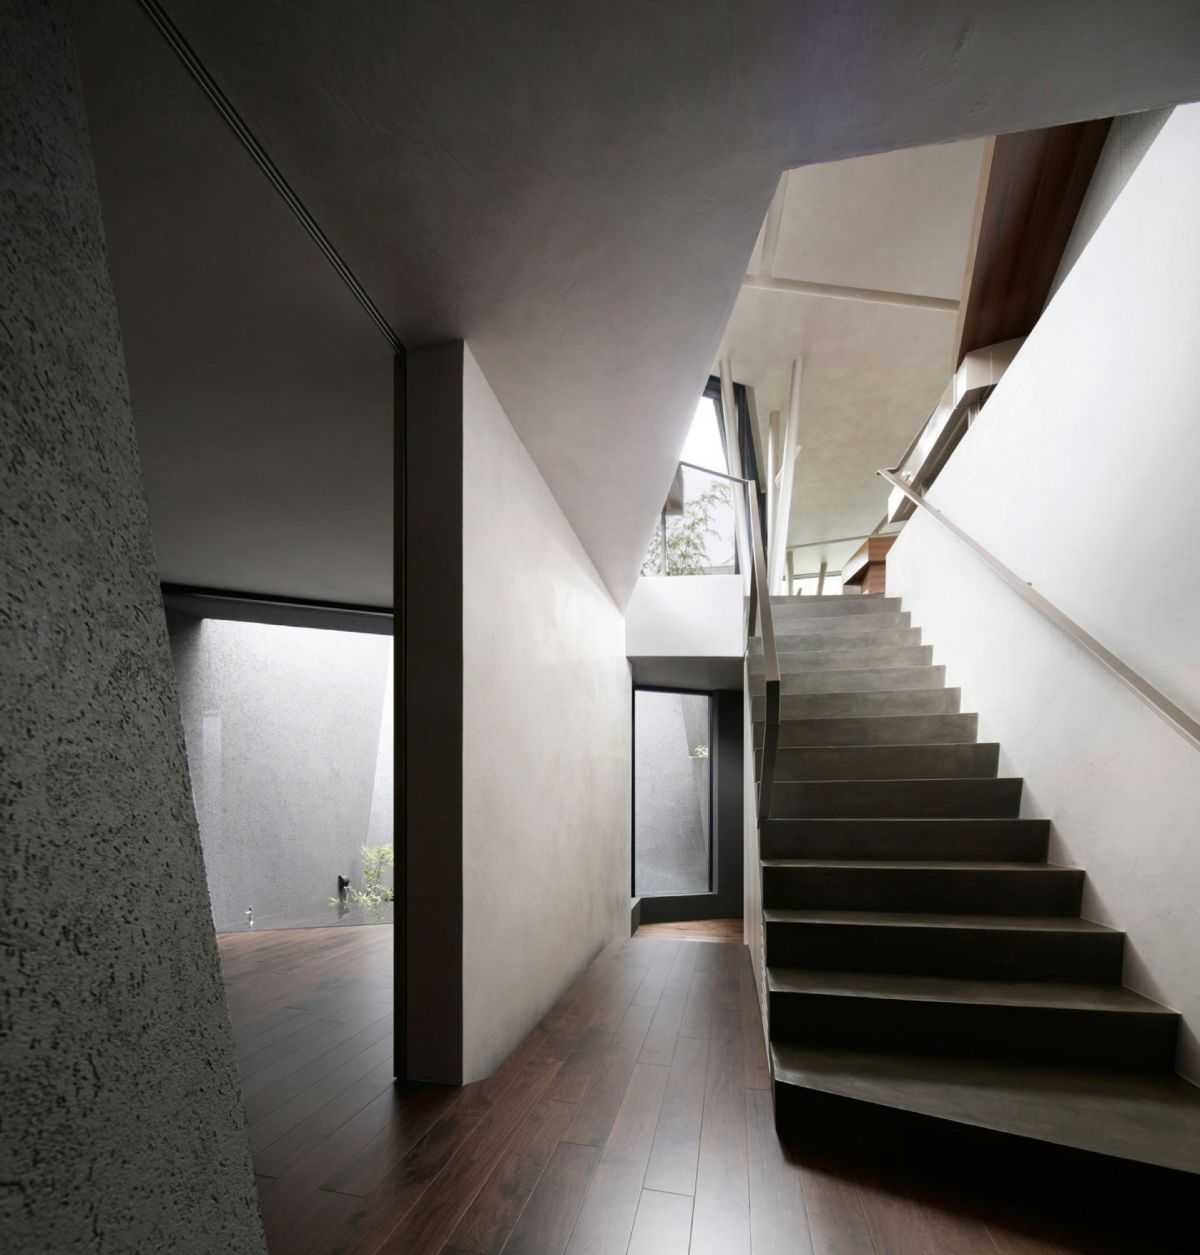 The SRK residence in Tokyo has a modern staircase